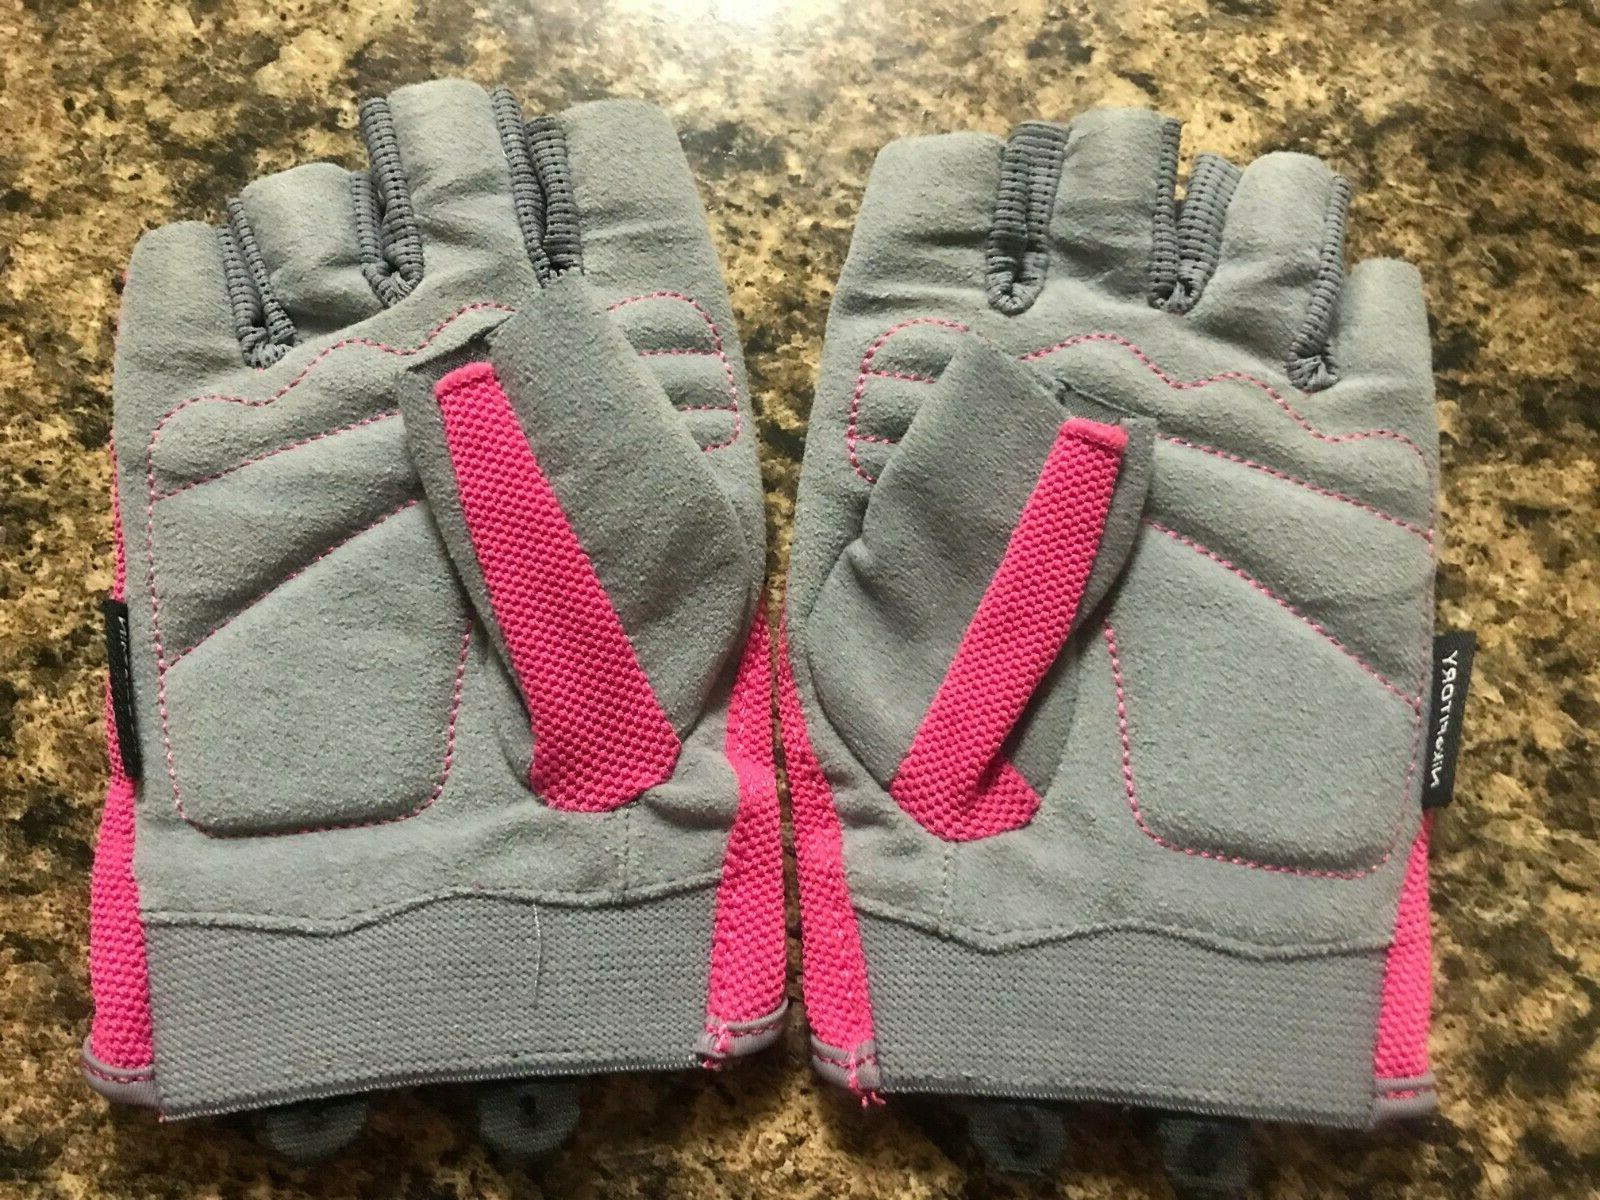 New Women's Nike Lifting and Gray